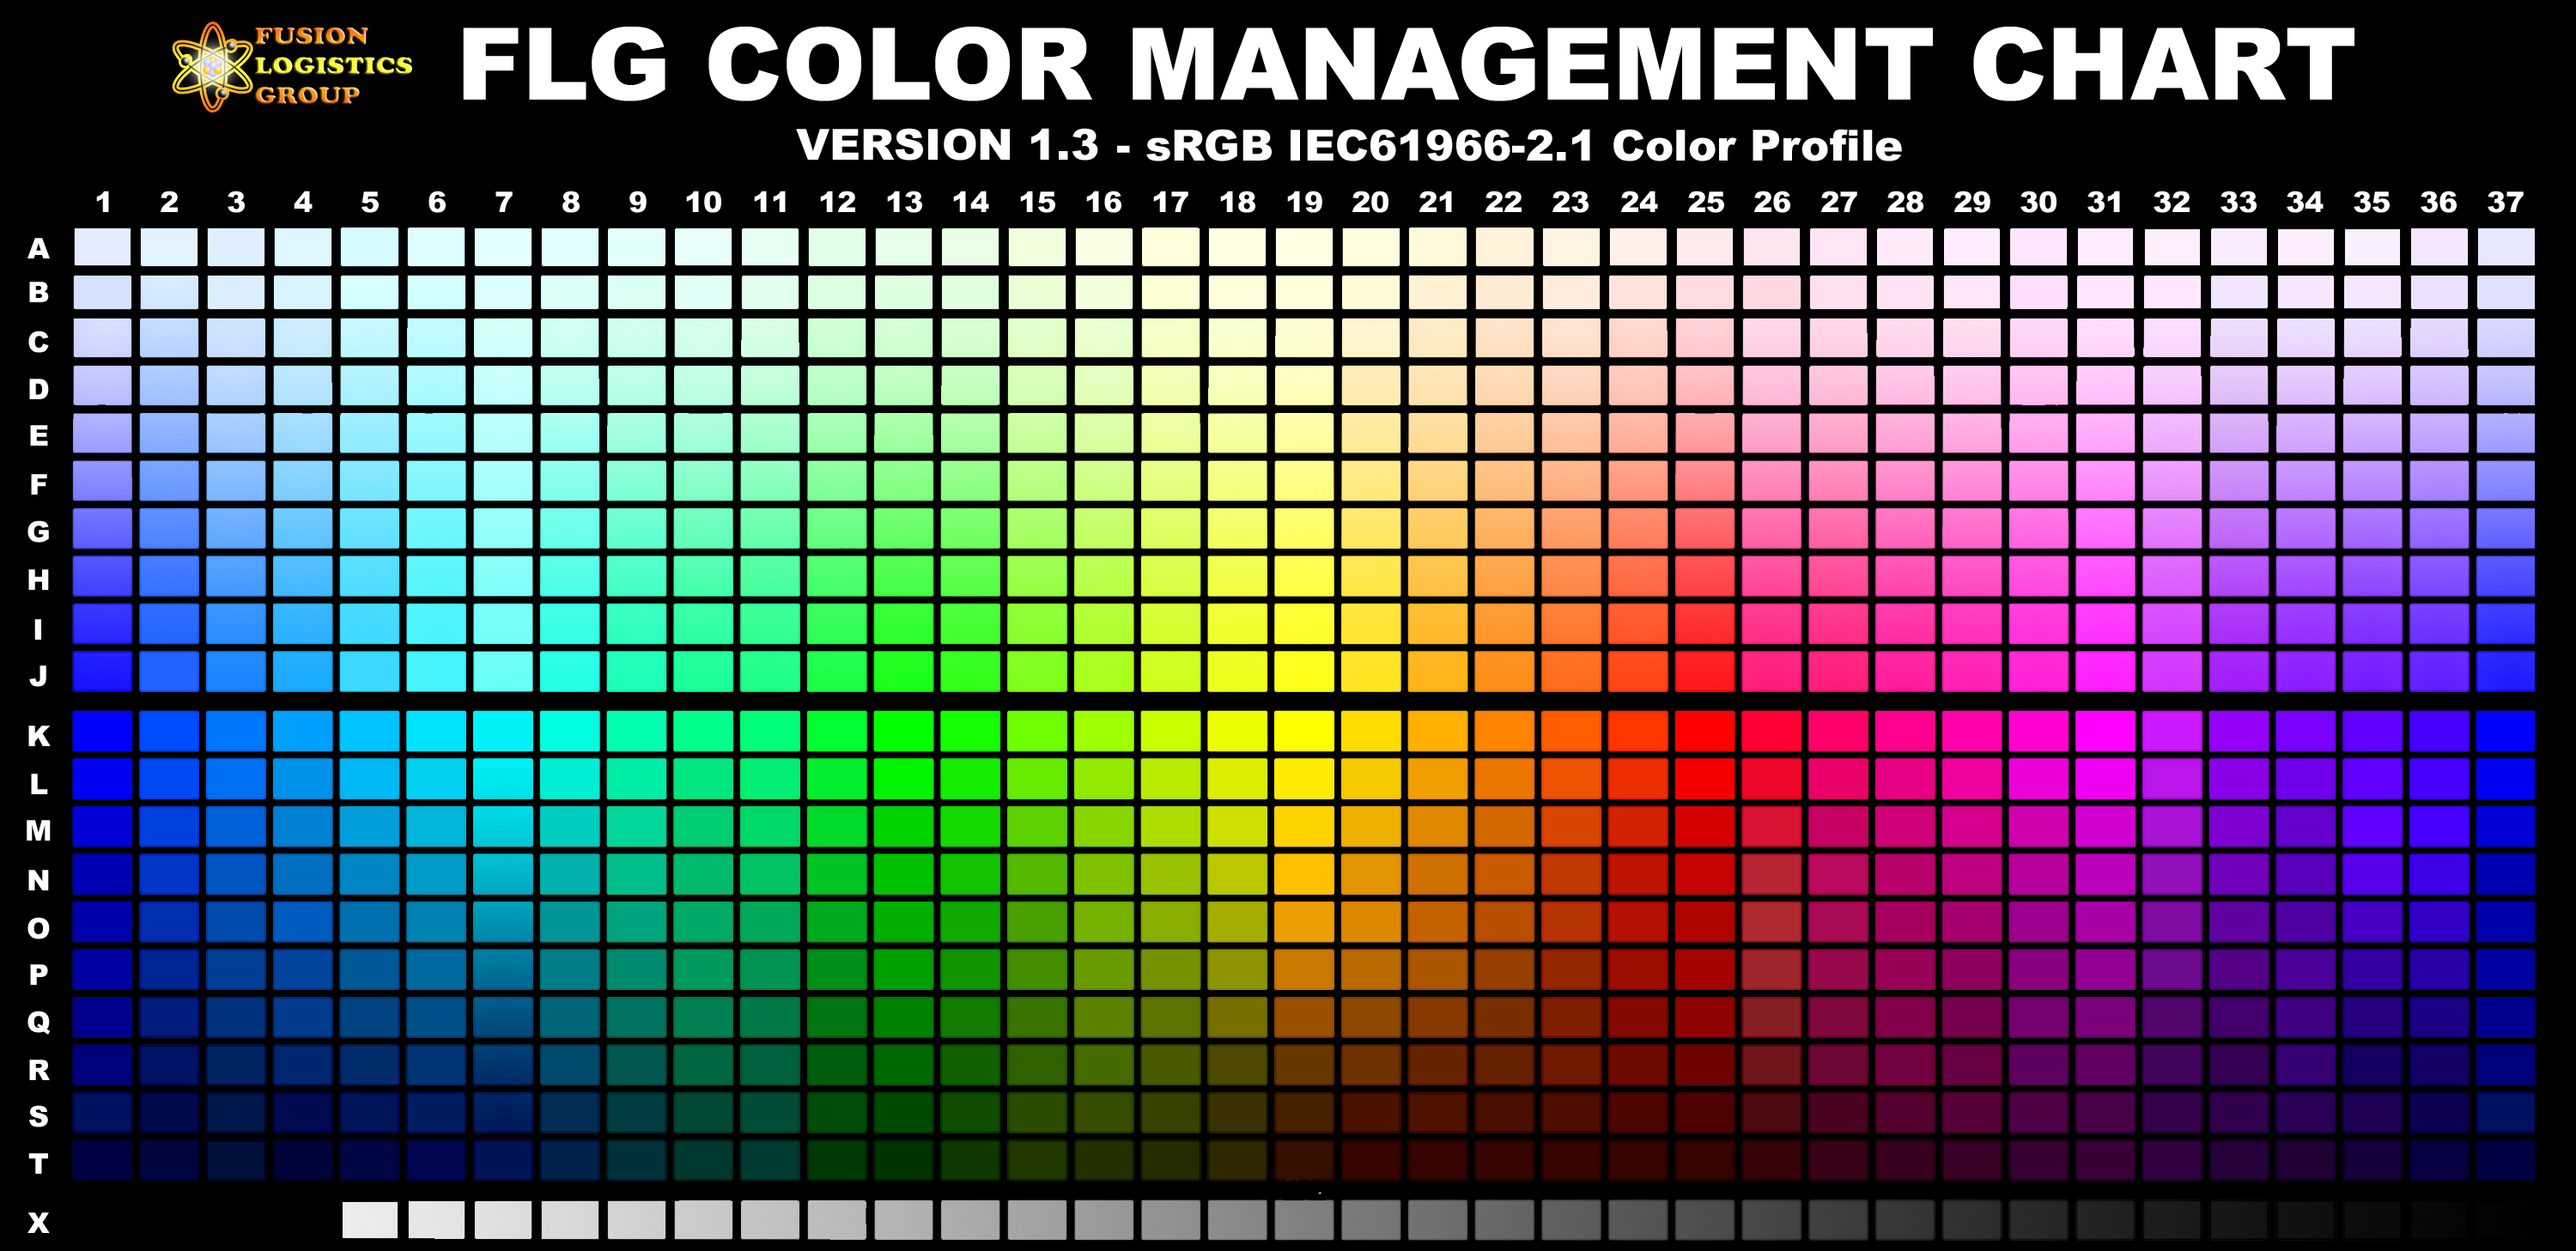 FLG Color Management Chart RGB (sRGB IEC61966 21